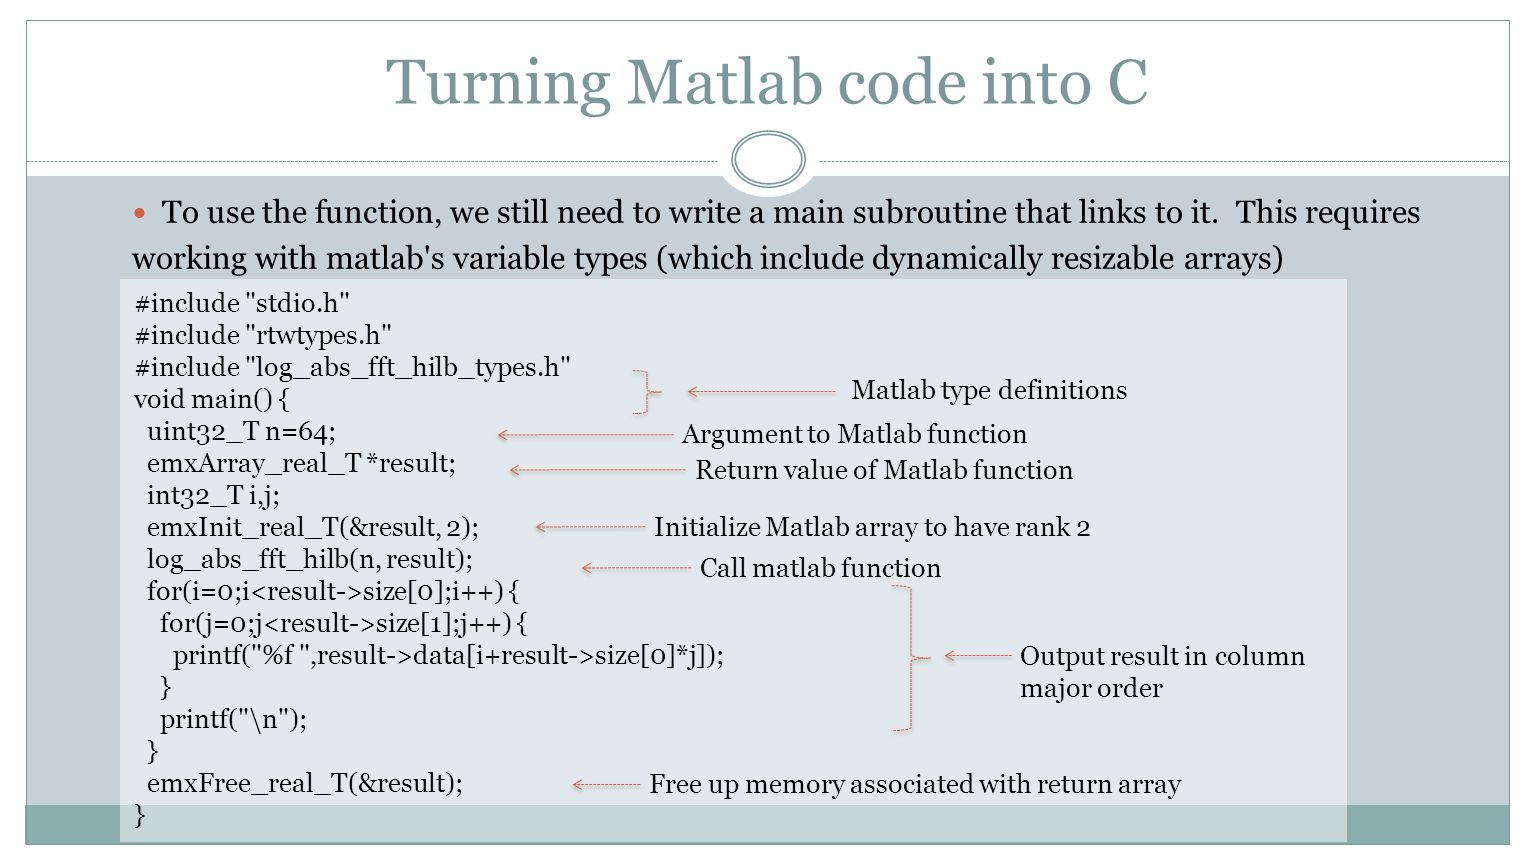 Turning Matlab code into C To use the function, we still need to write a main subroutine that links to it. This requires working with matlab's variabl